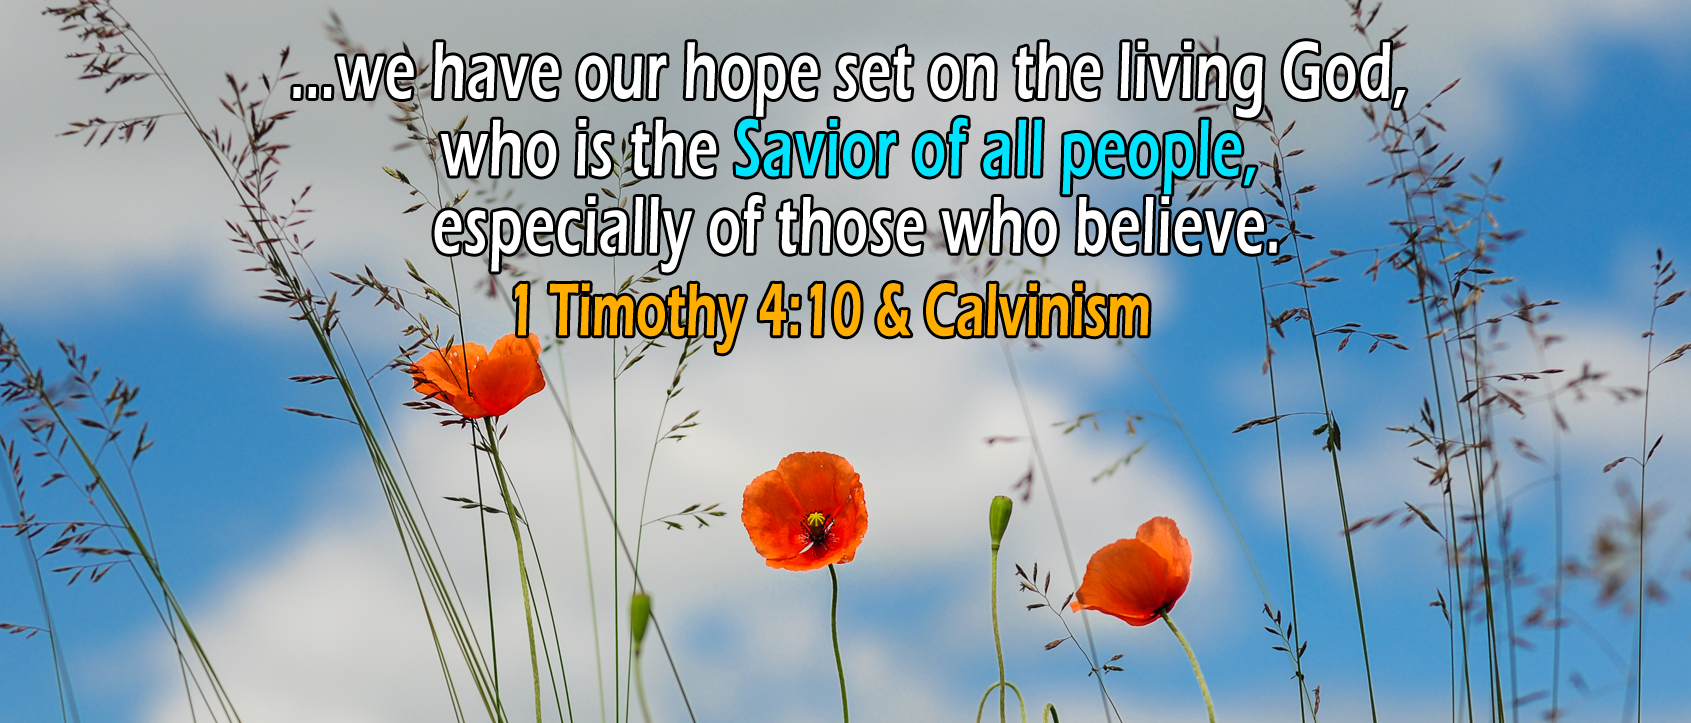 1 Timothy 4:10, 'Savior of all men' - The Staunch Calvinist